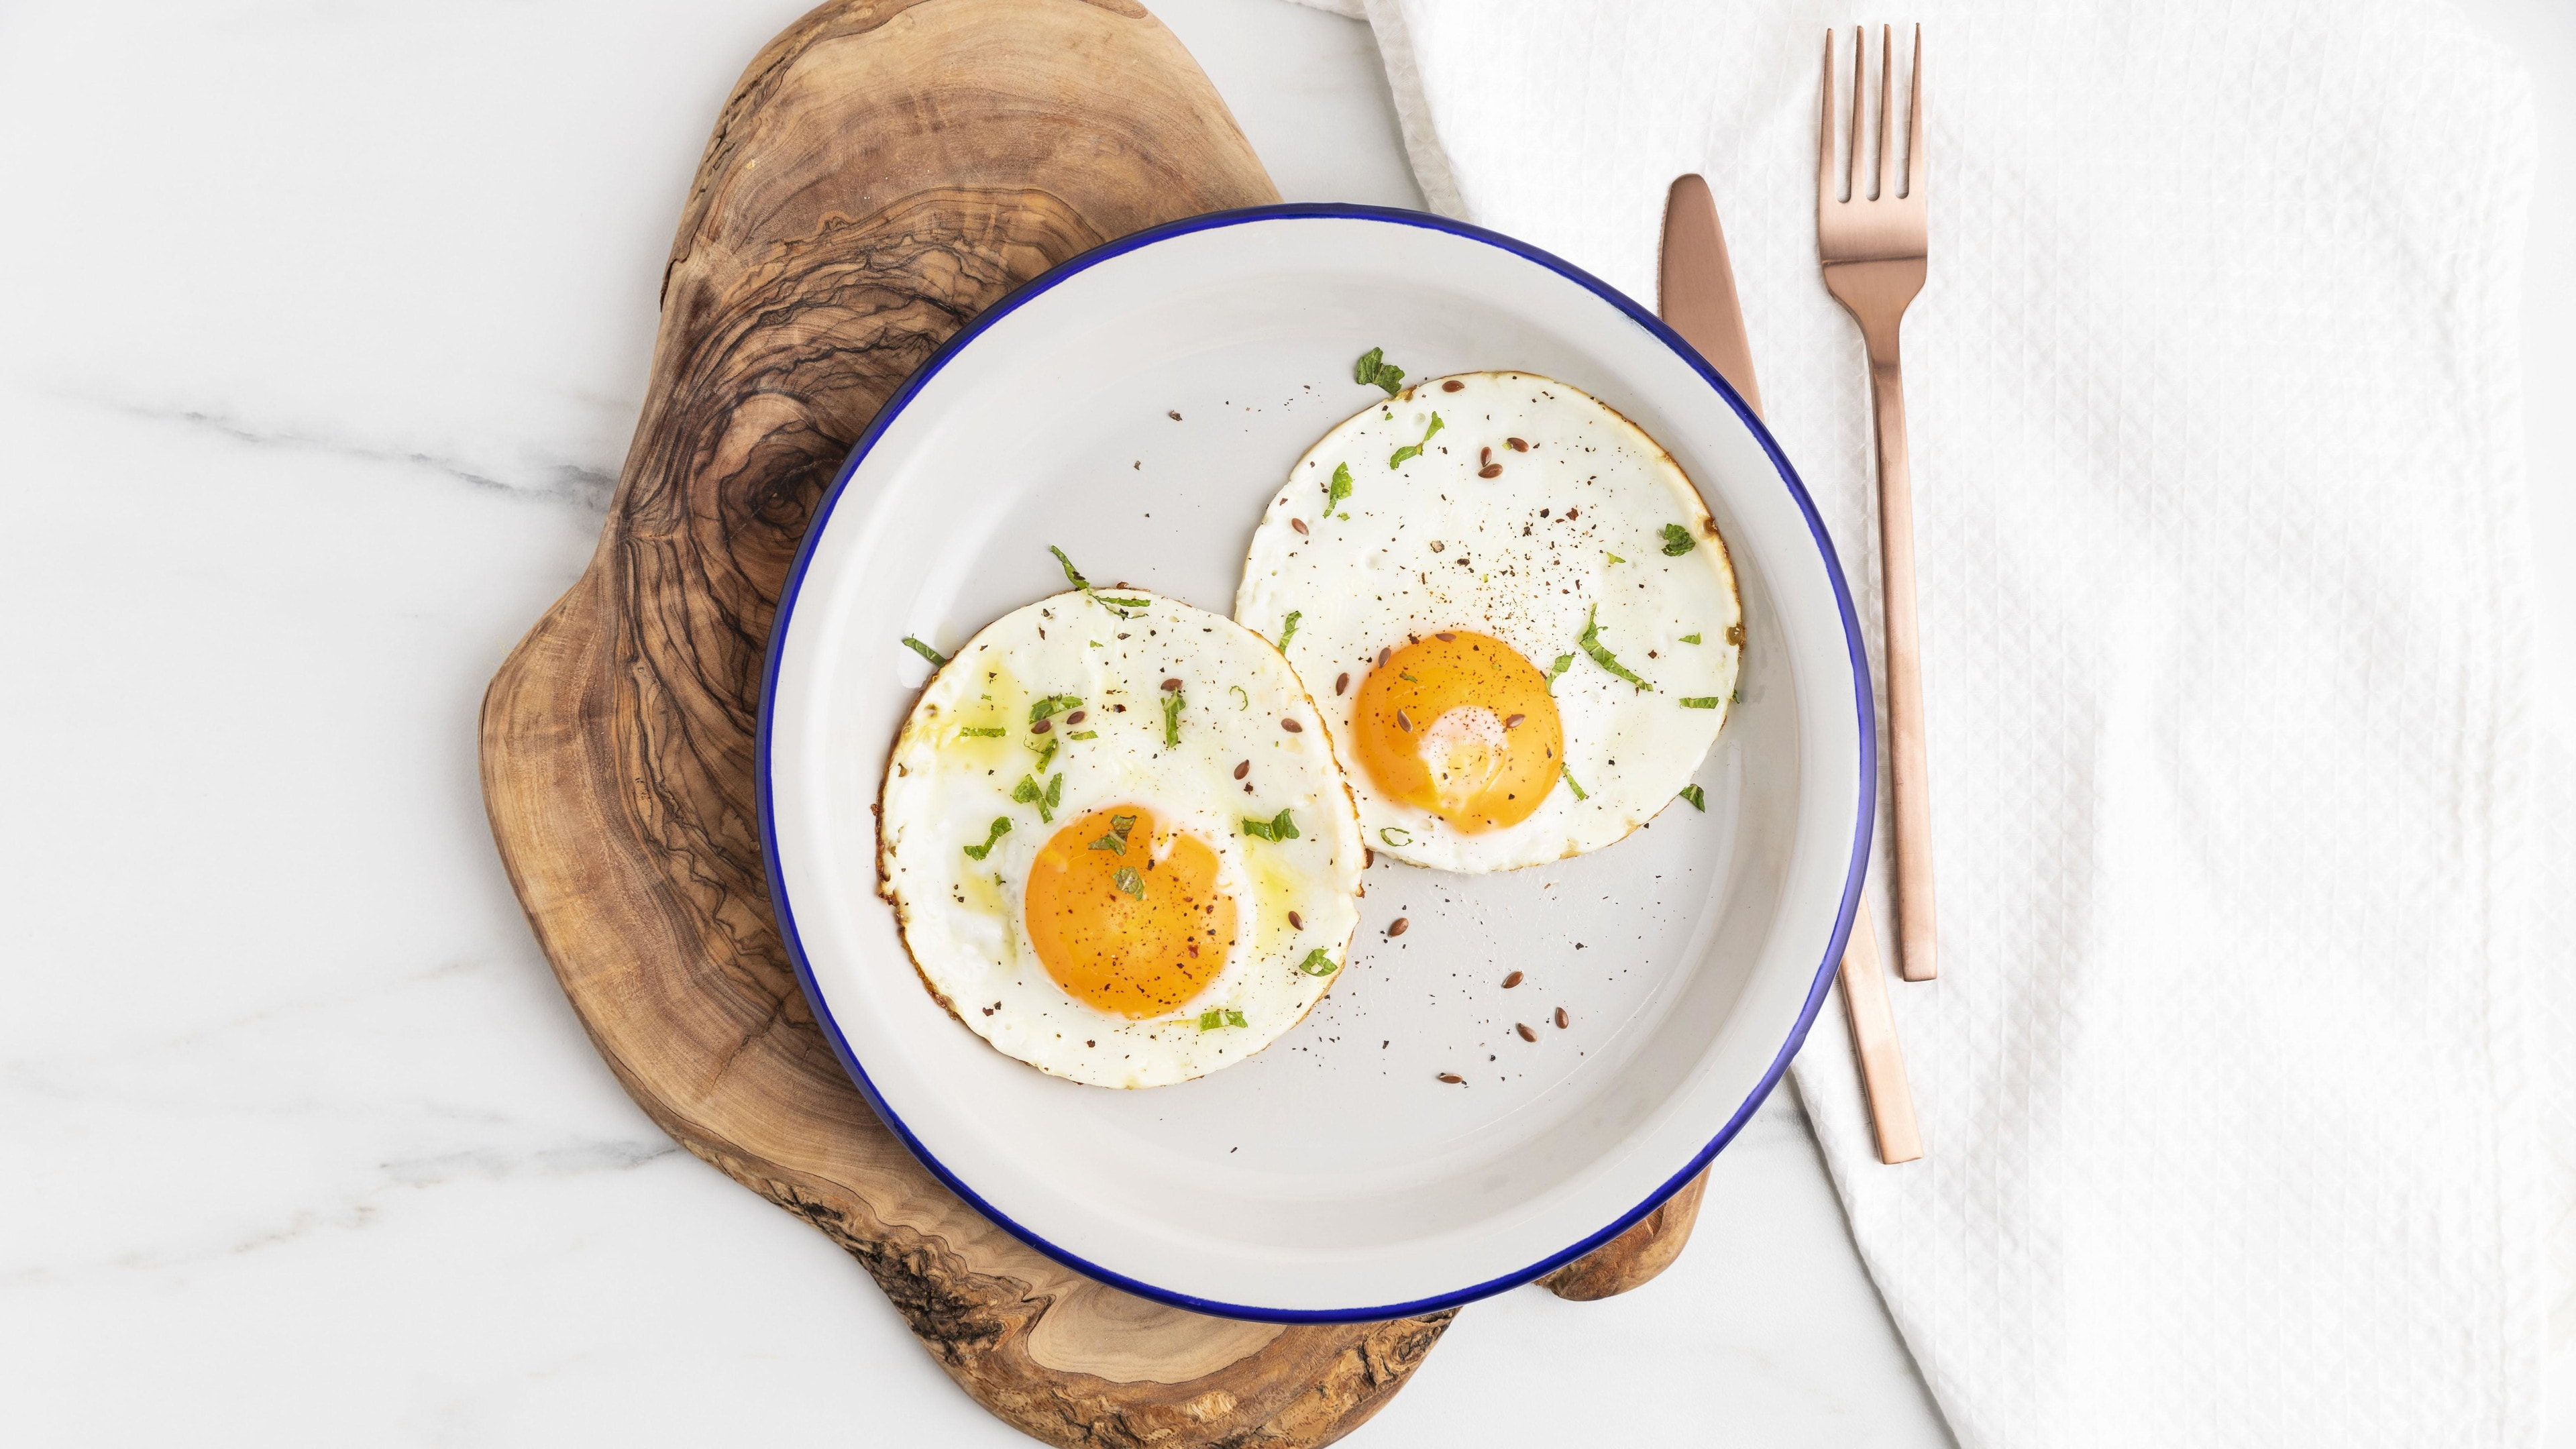 Fried eggs plate with cutlery on wooden board